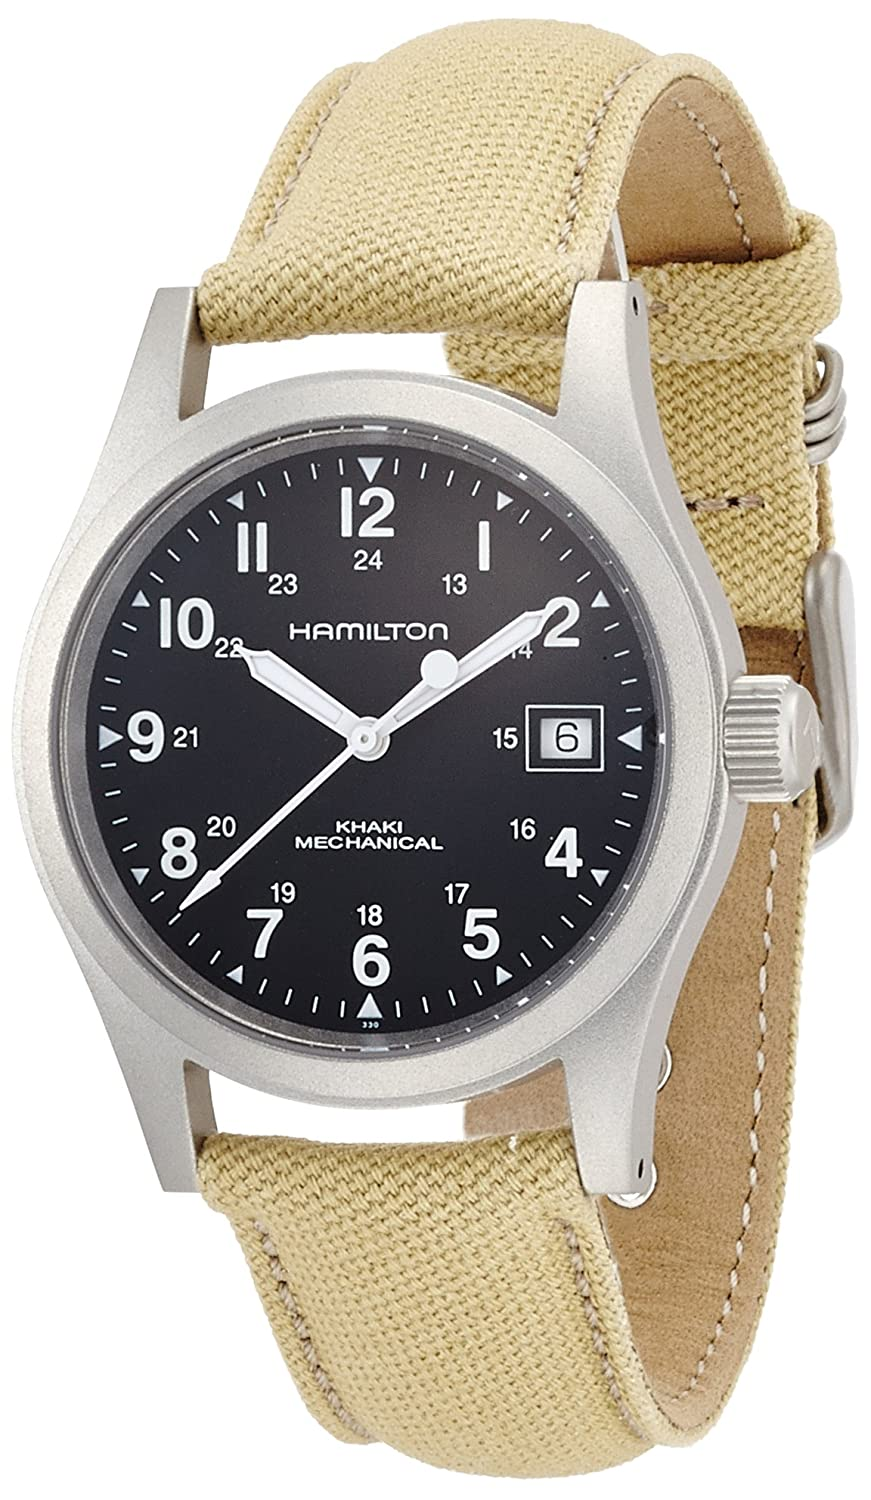 Hamilton Men's Analogue Mechanical Watch with Textile Strap H69419933:  Amazon.co.uk: Watches